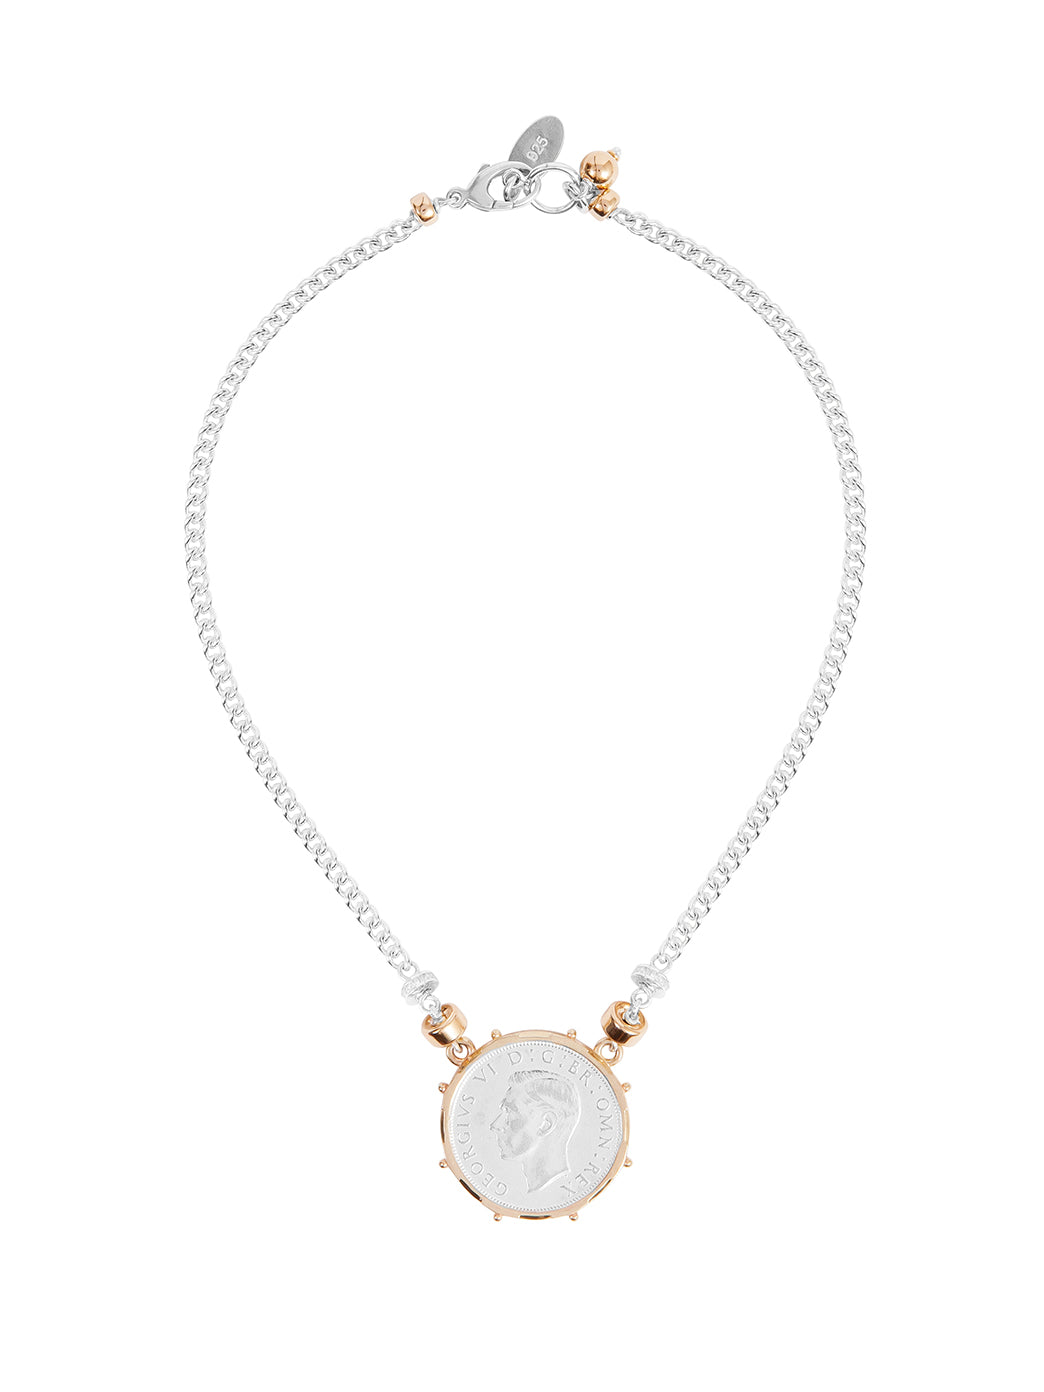 Fiorina Jewellery Coronet Necklace